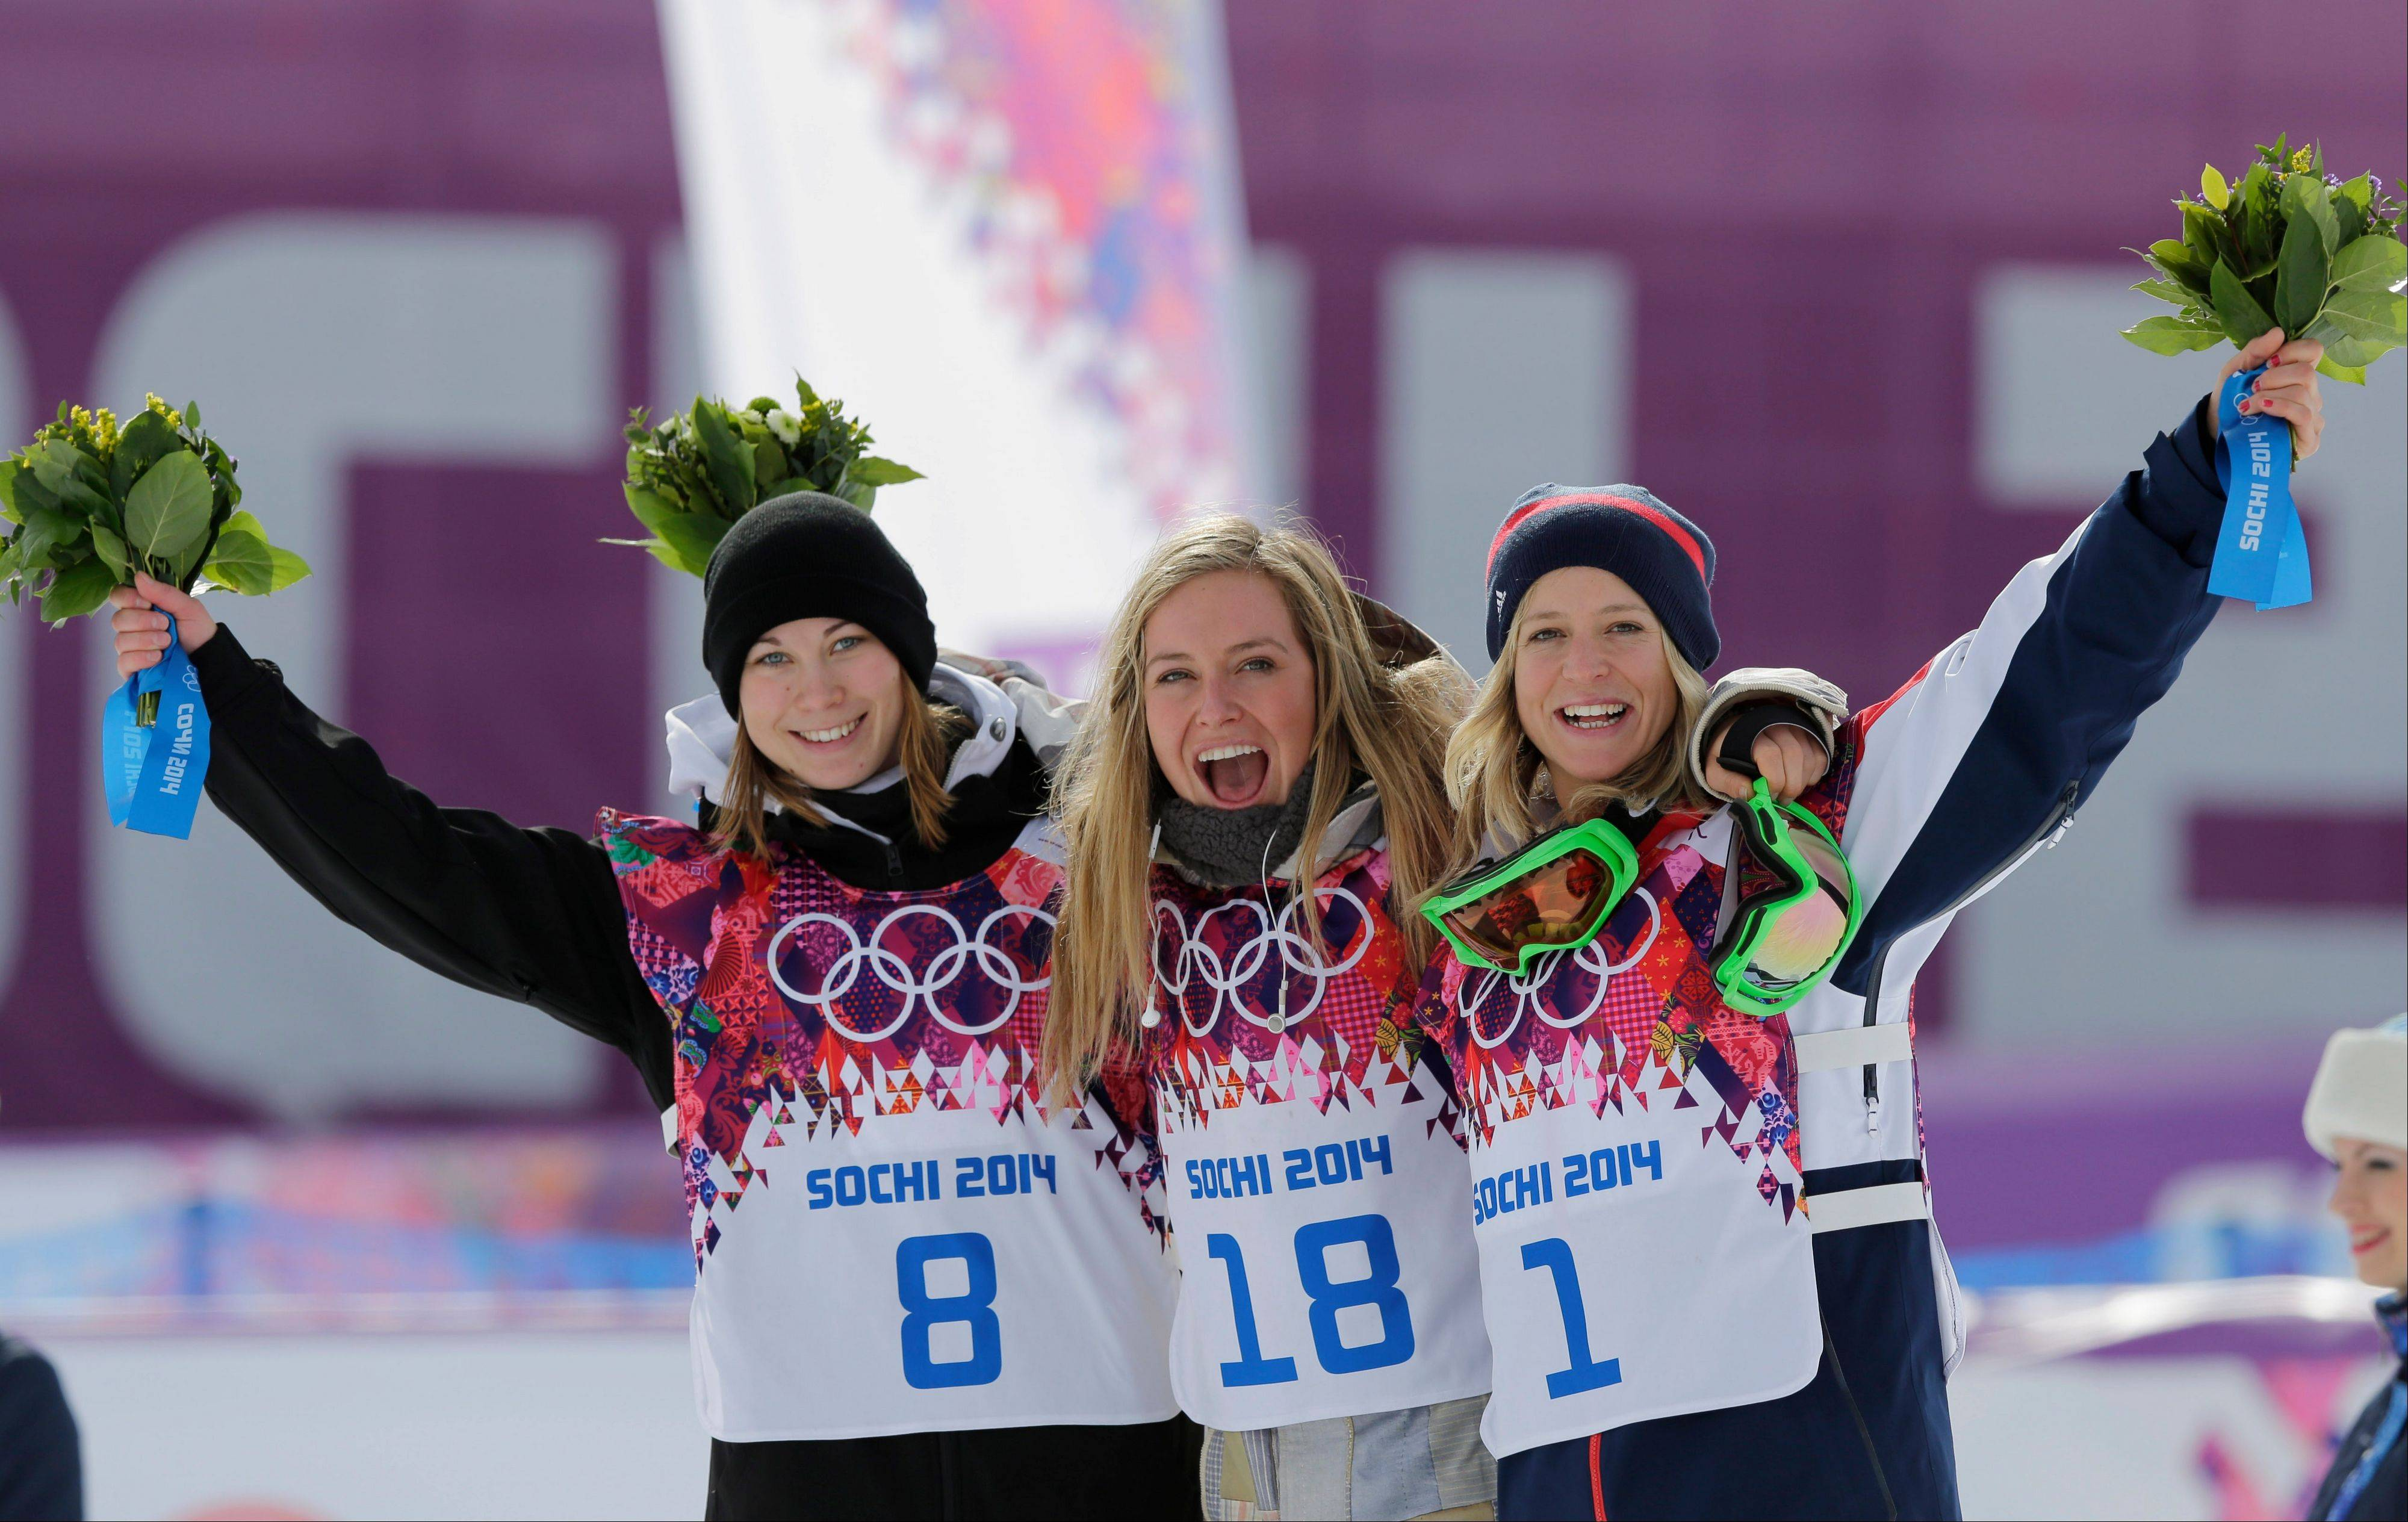 Jamie Anderson of the United States, center, celebrates with silver medalist Enni Rukajarvi of Finland, left, and bronze medalist Jenny Jones of Britain, after Anderson won the women's snowboard slopestyle final at the 2014 Winter Olympics, Sunday, Feb. 9, 2014, in Krasnaya Polyana, Russia.